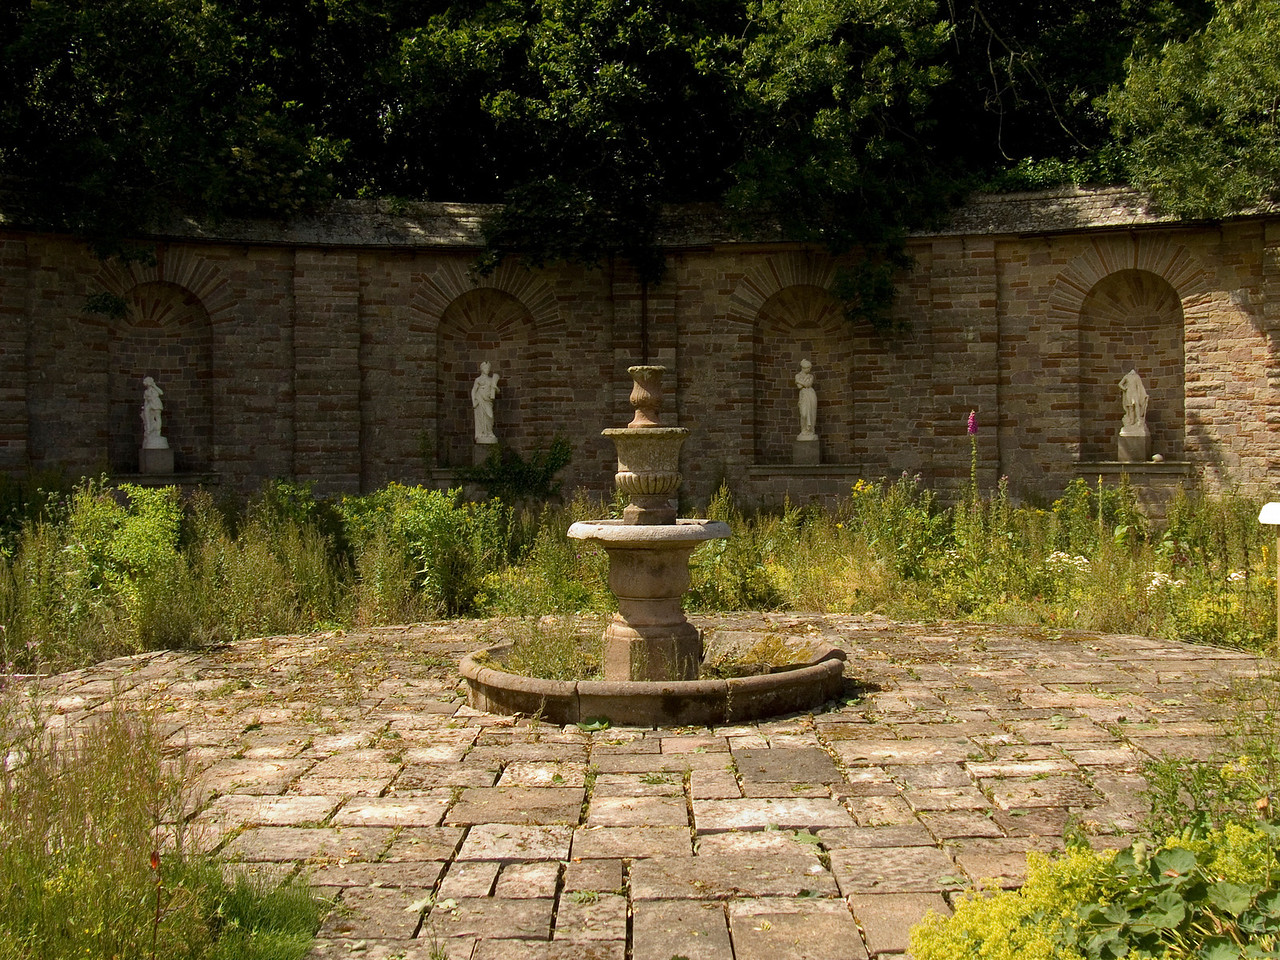 Part of the walled garden that was built by CJ Leyland when he resided at Haggerston House. The water fountain and mock Greek statues are a feature of the garden